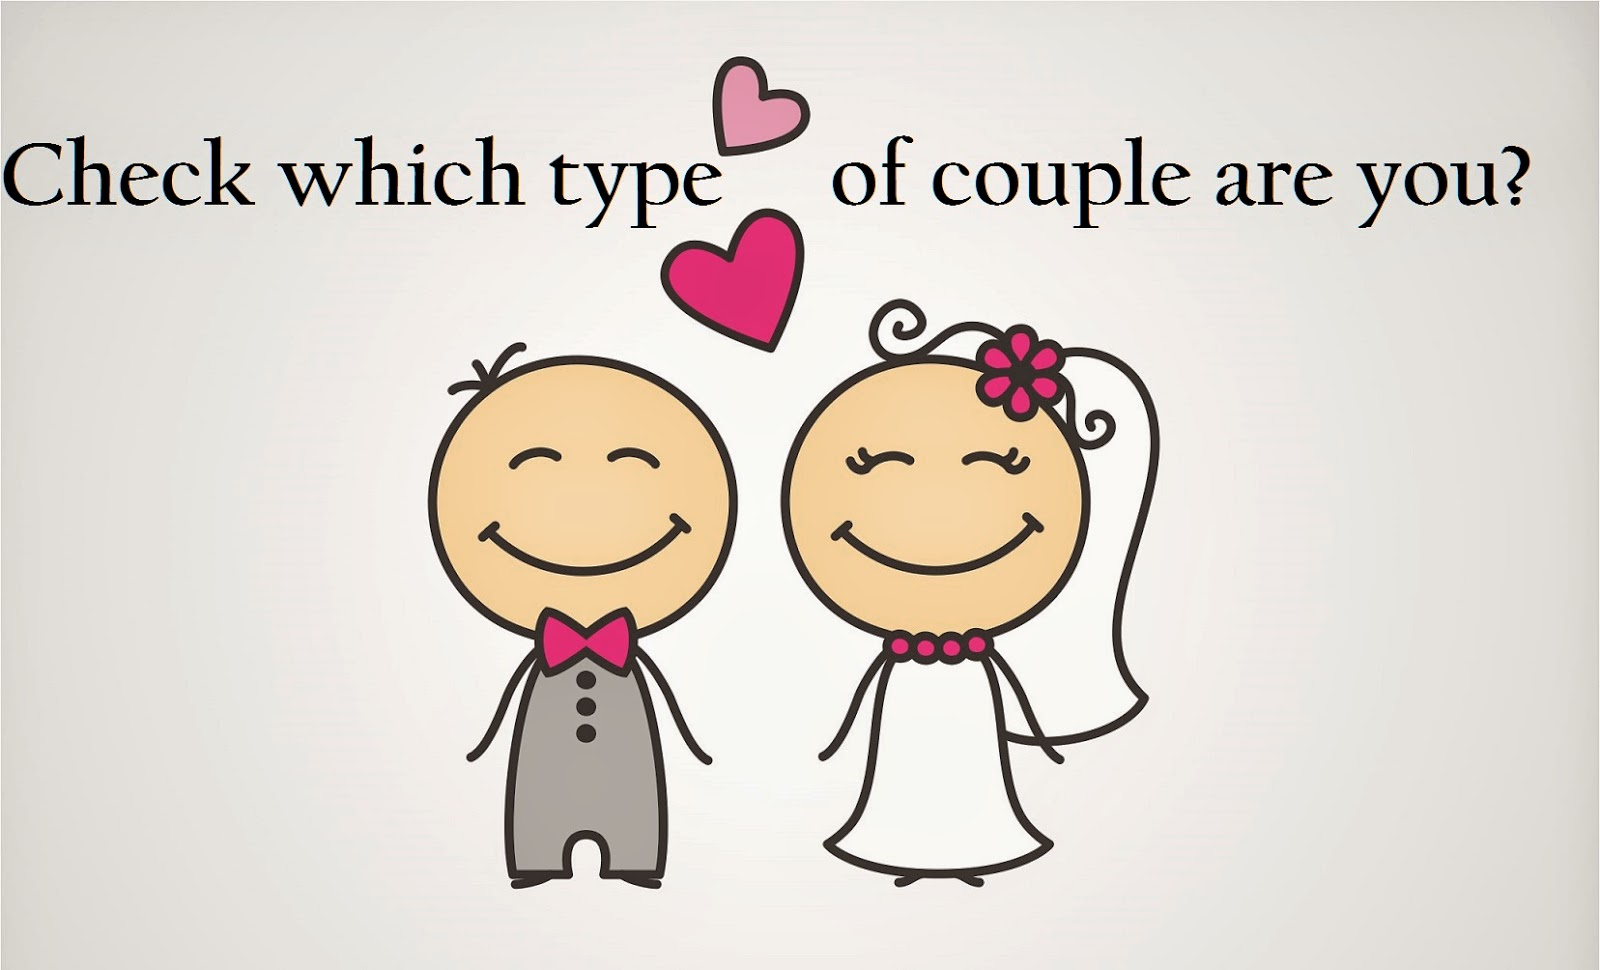 Check which type of couple you are